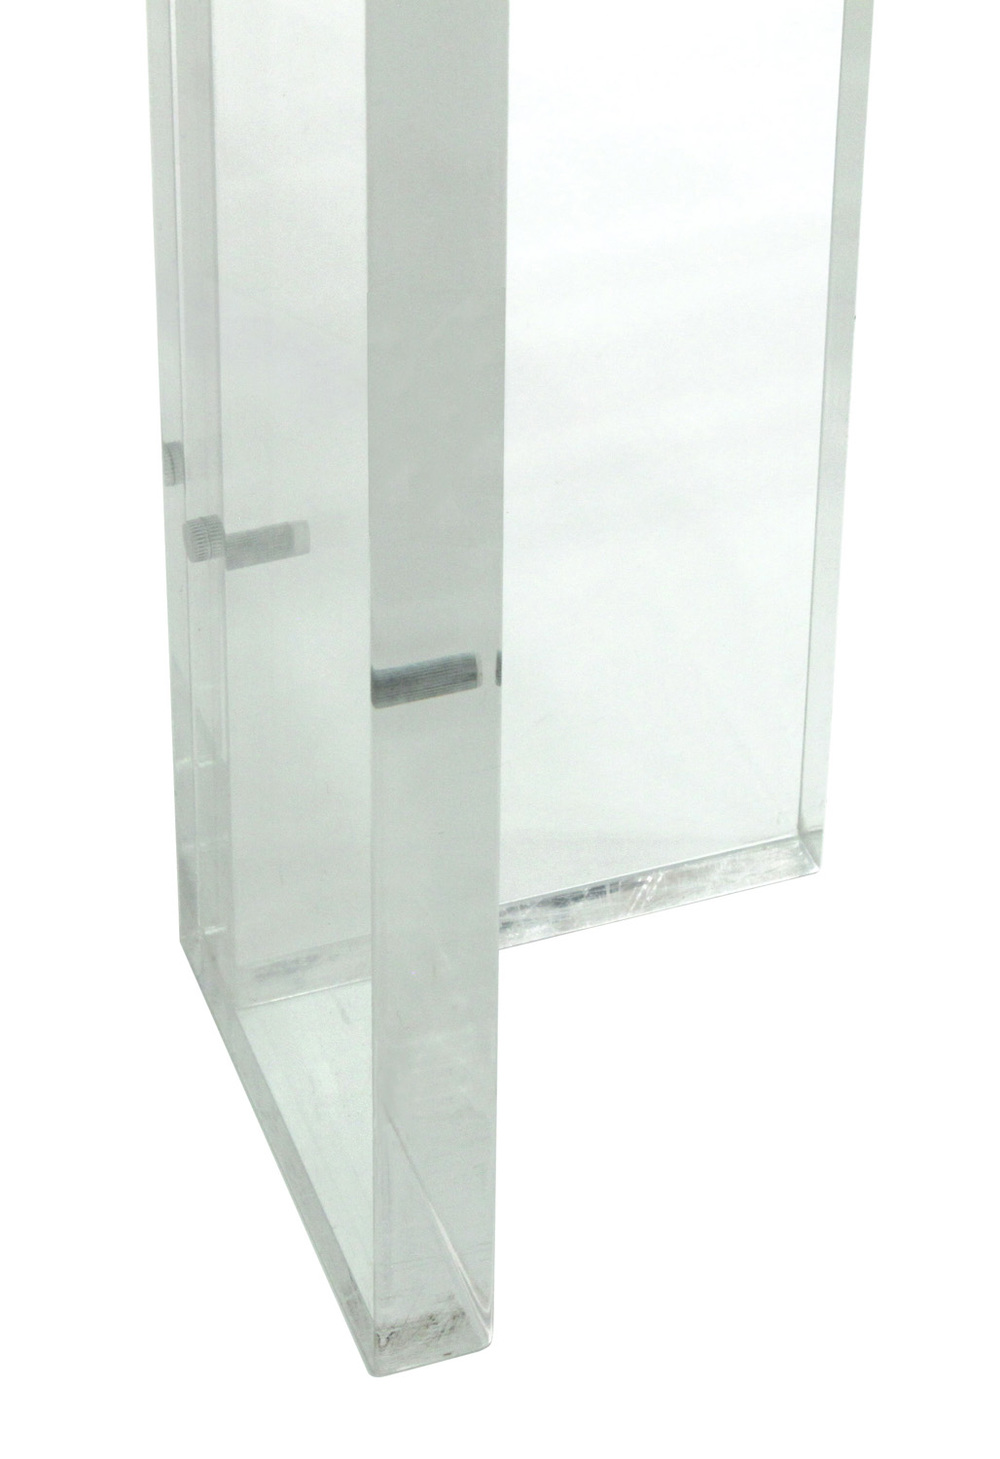 70s 35 square thick lucite+glass endtable143 detail4 hires.jpg